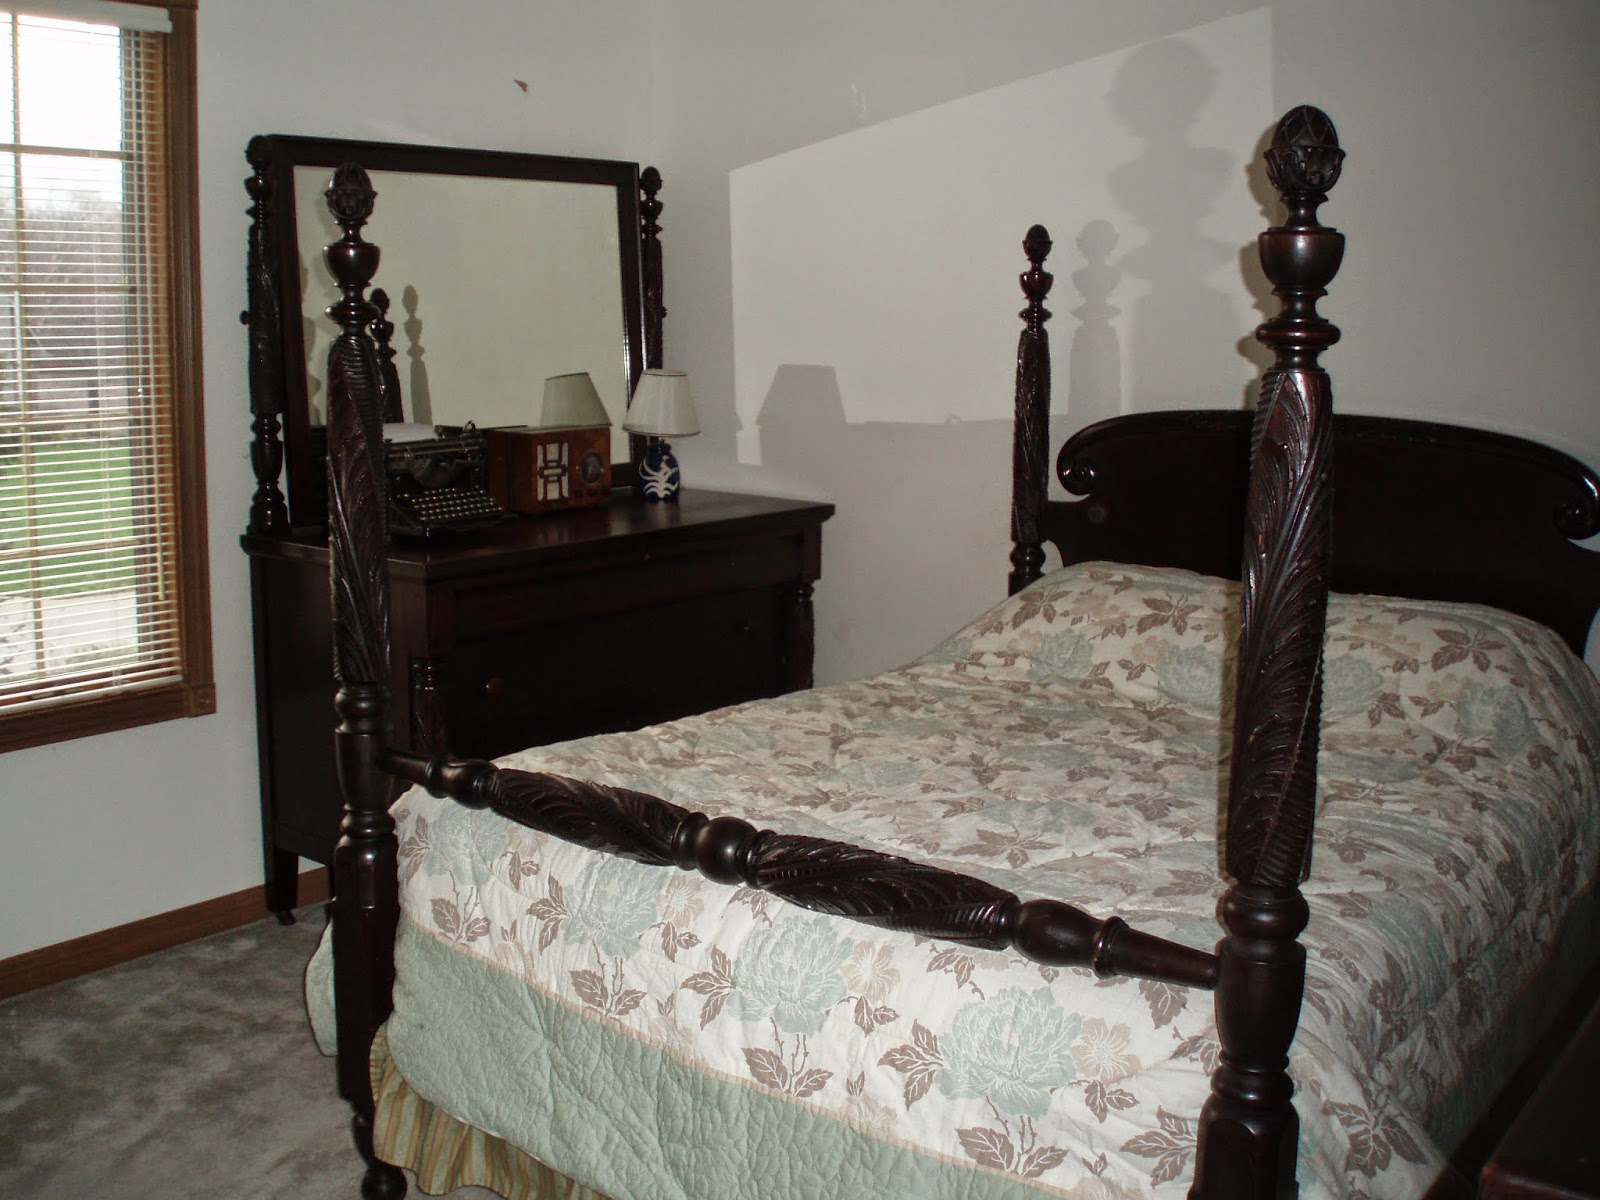 Original Full Size Antique Bed